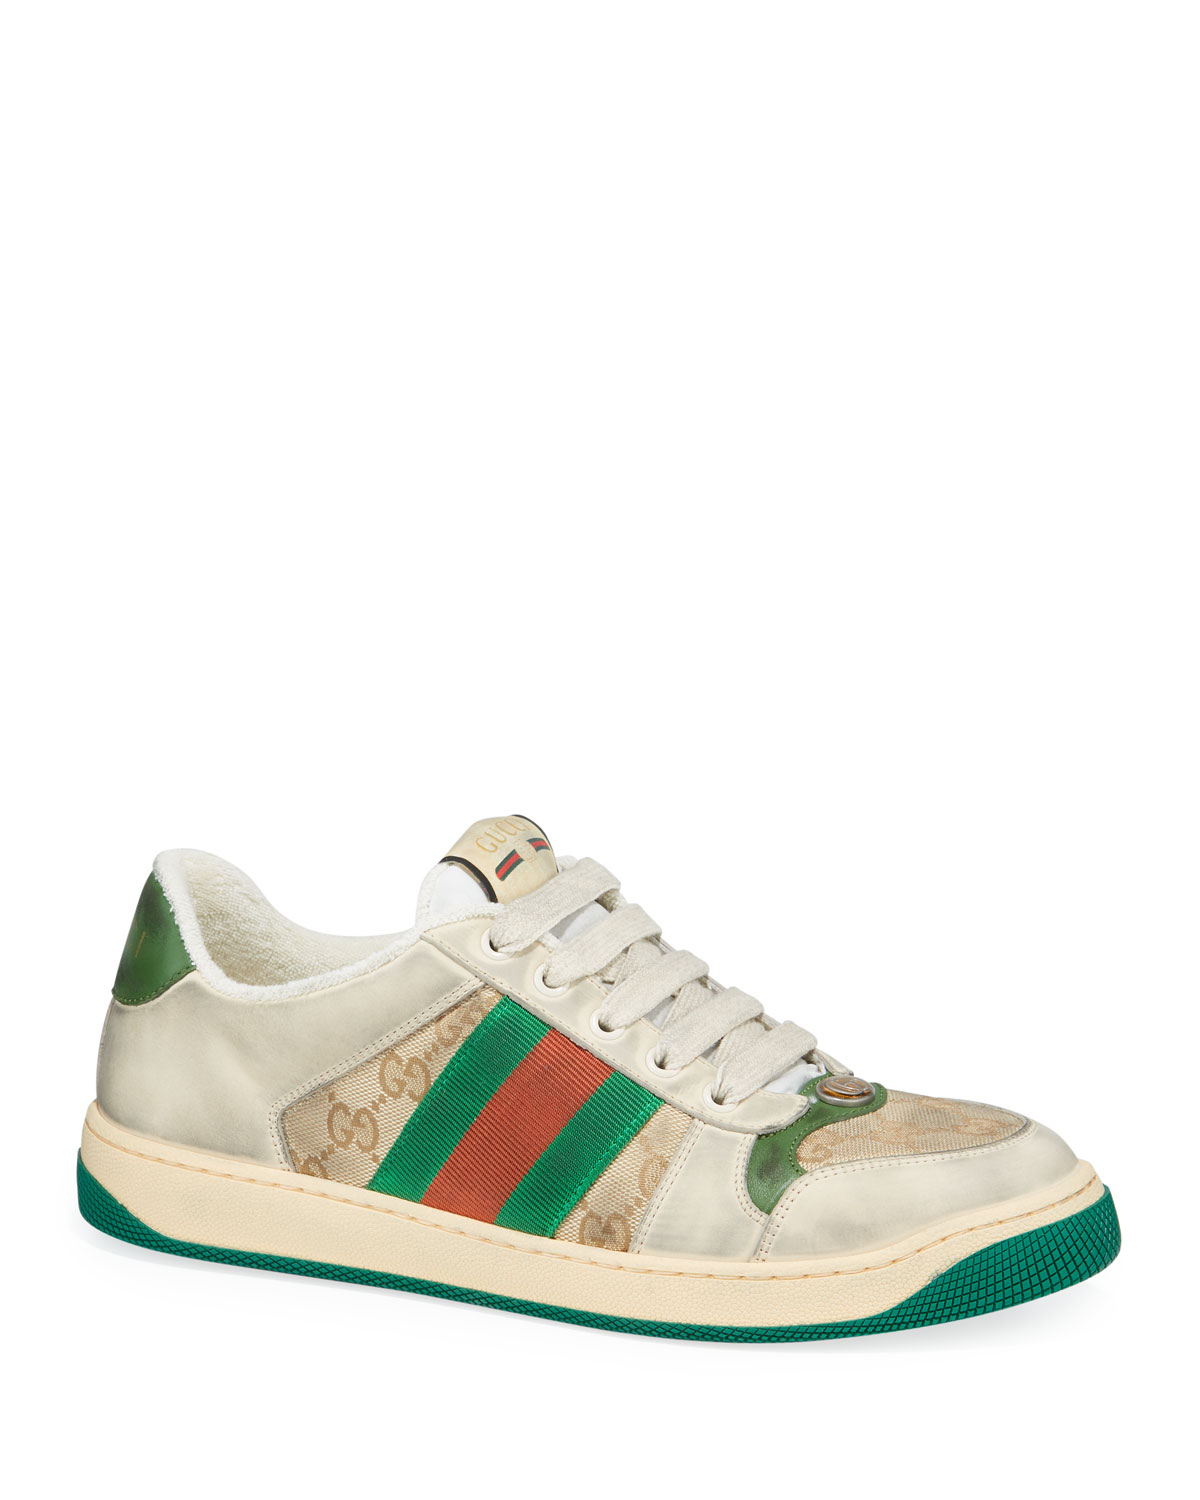 91424283ee0 Gucci Men s Distressed GG Canvas and Leather Sneakers